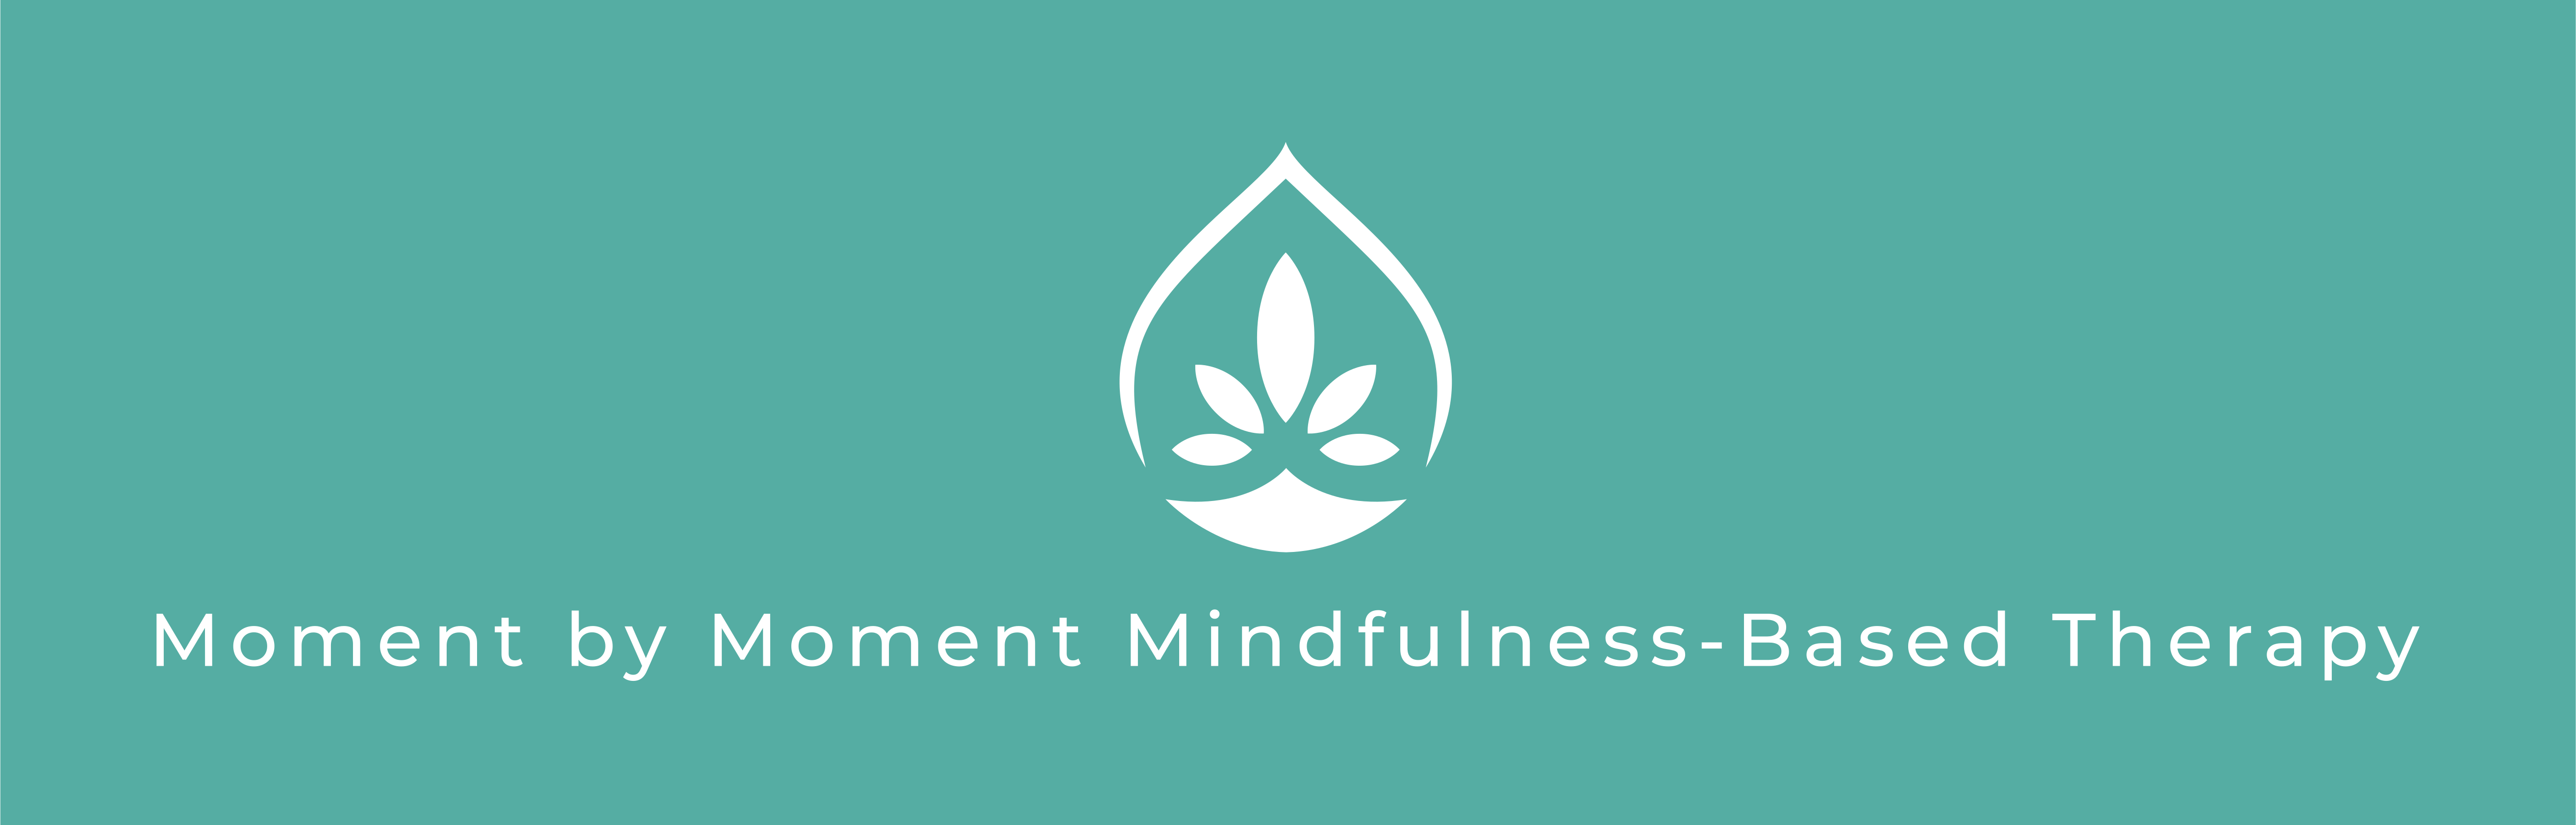 Moment by Moment Mindfulness-Based Therapy